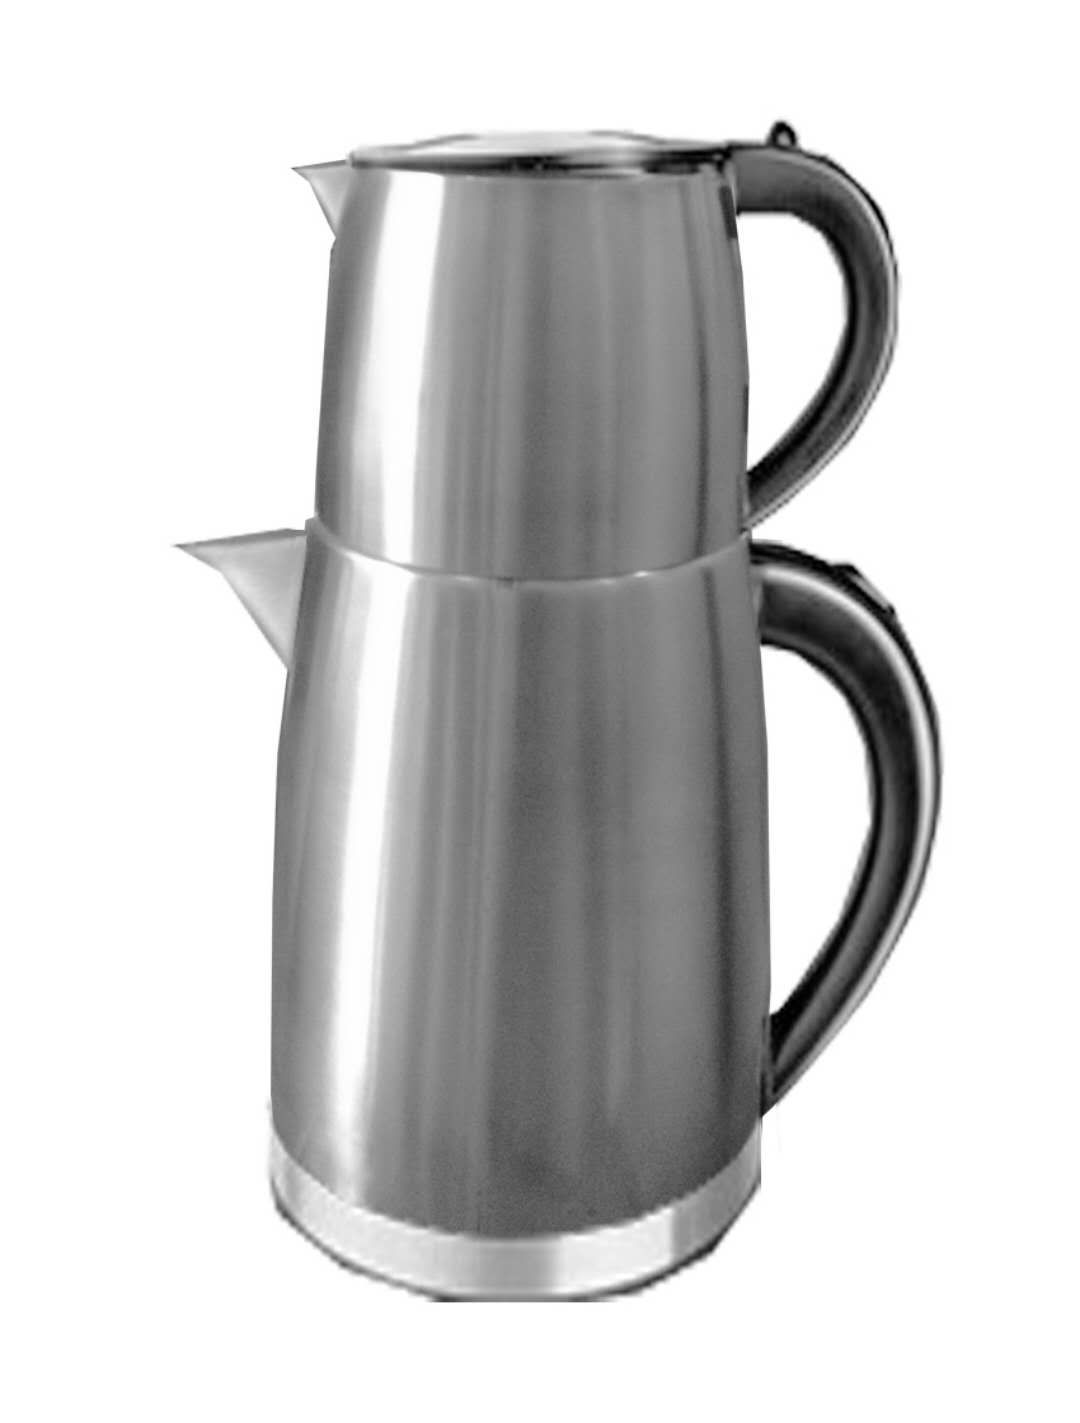 stainless electrical kettle